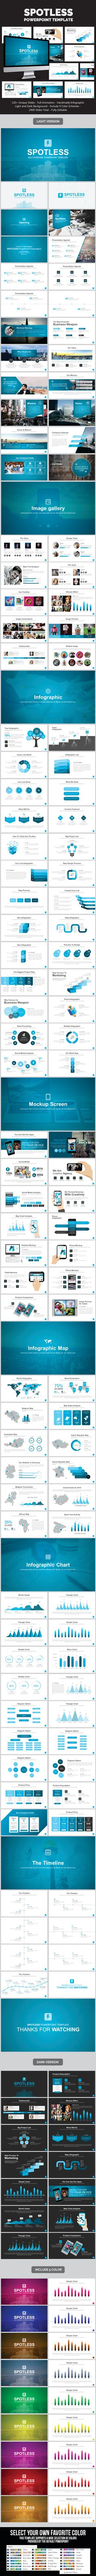 Spotless Presentation Template #powerpoint #presentation Download : https://graphicriver.net/item/spotless-presentation-template/13215178?s_rank=11?ref=BrandEarth